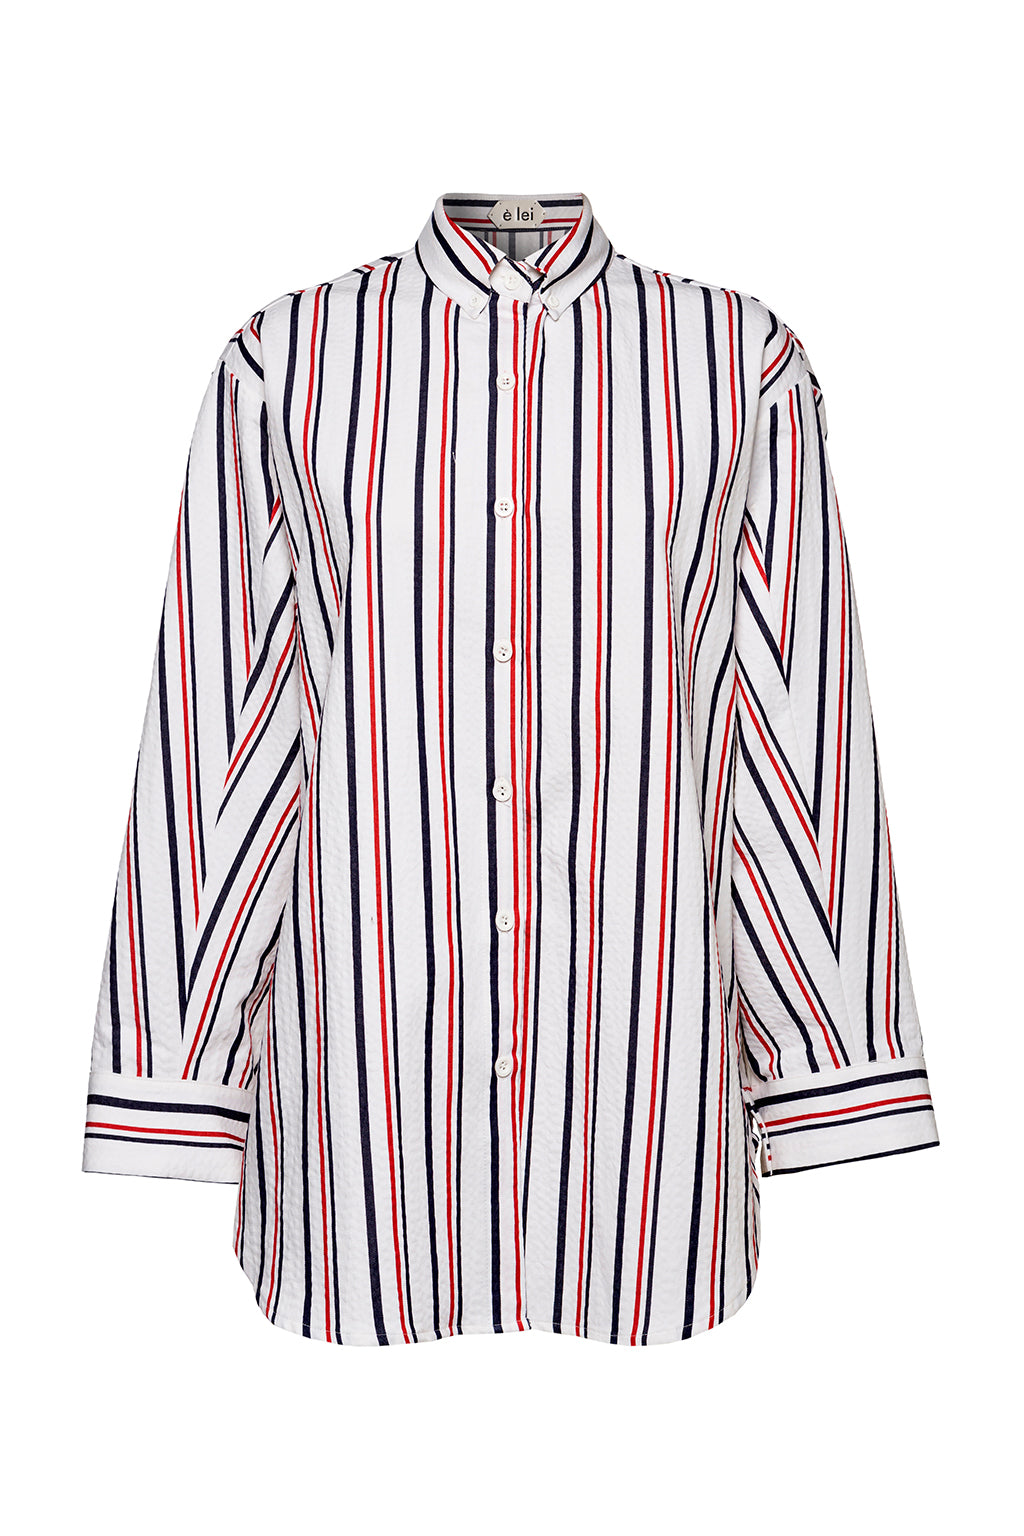 SAILOR OVERSIZE SHIRT